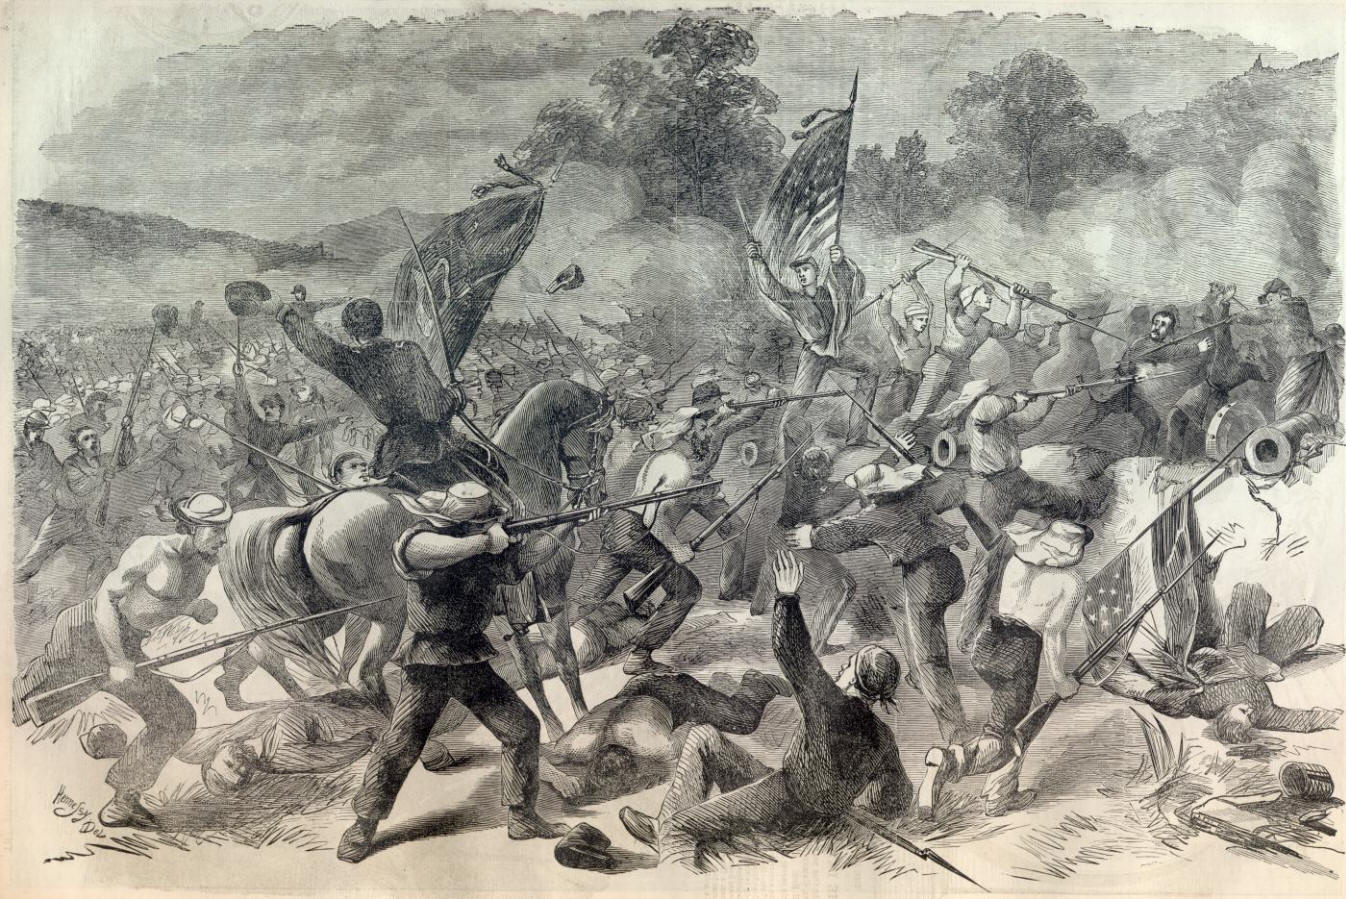 battle of bull run But no one had ever seen death on the scale that the big battles of the civil war   first battle of bull run, chromolithograph by kurz & allison.